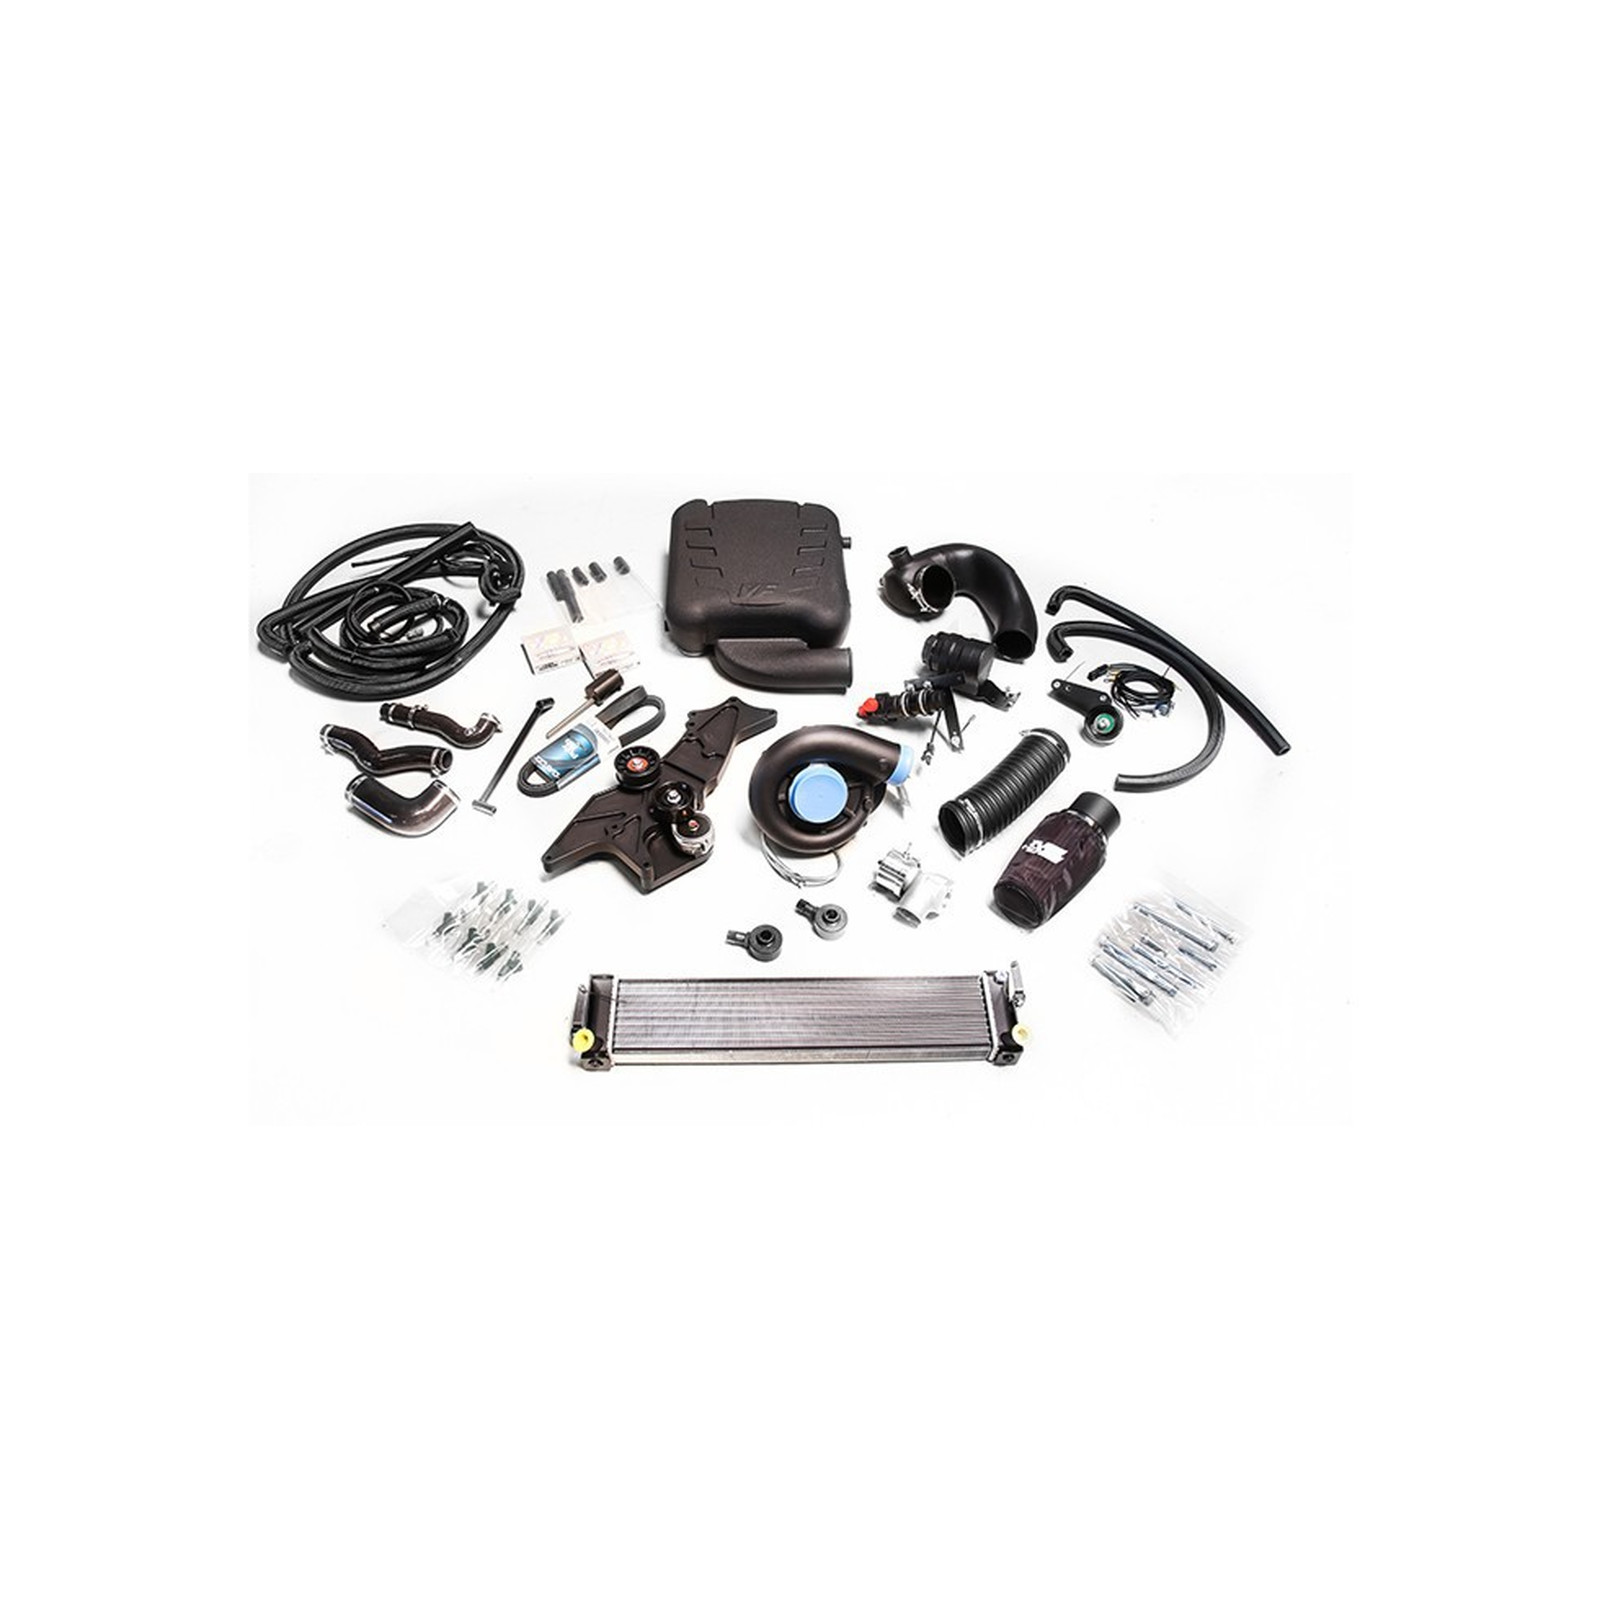 Supercharger Kits For Bmw 335i